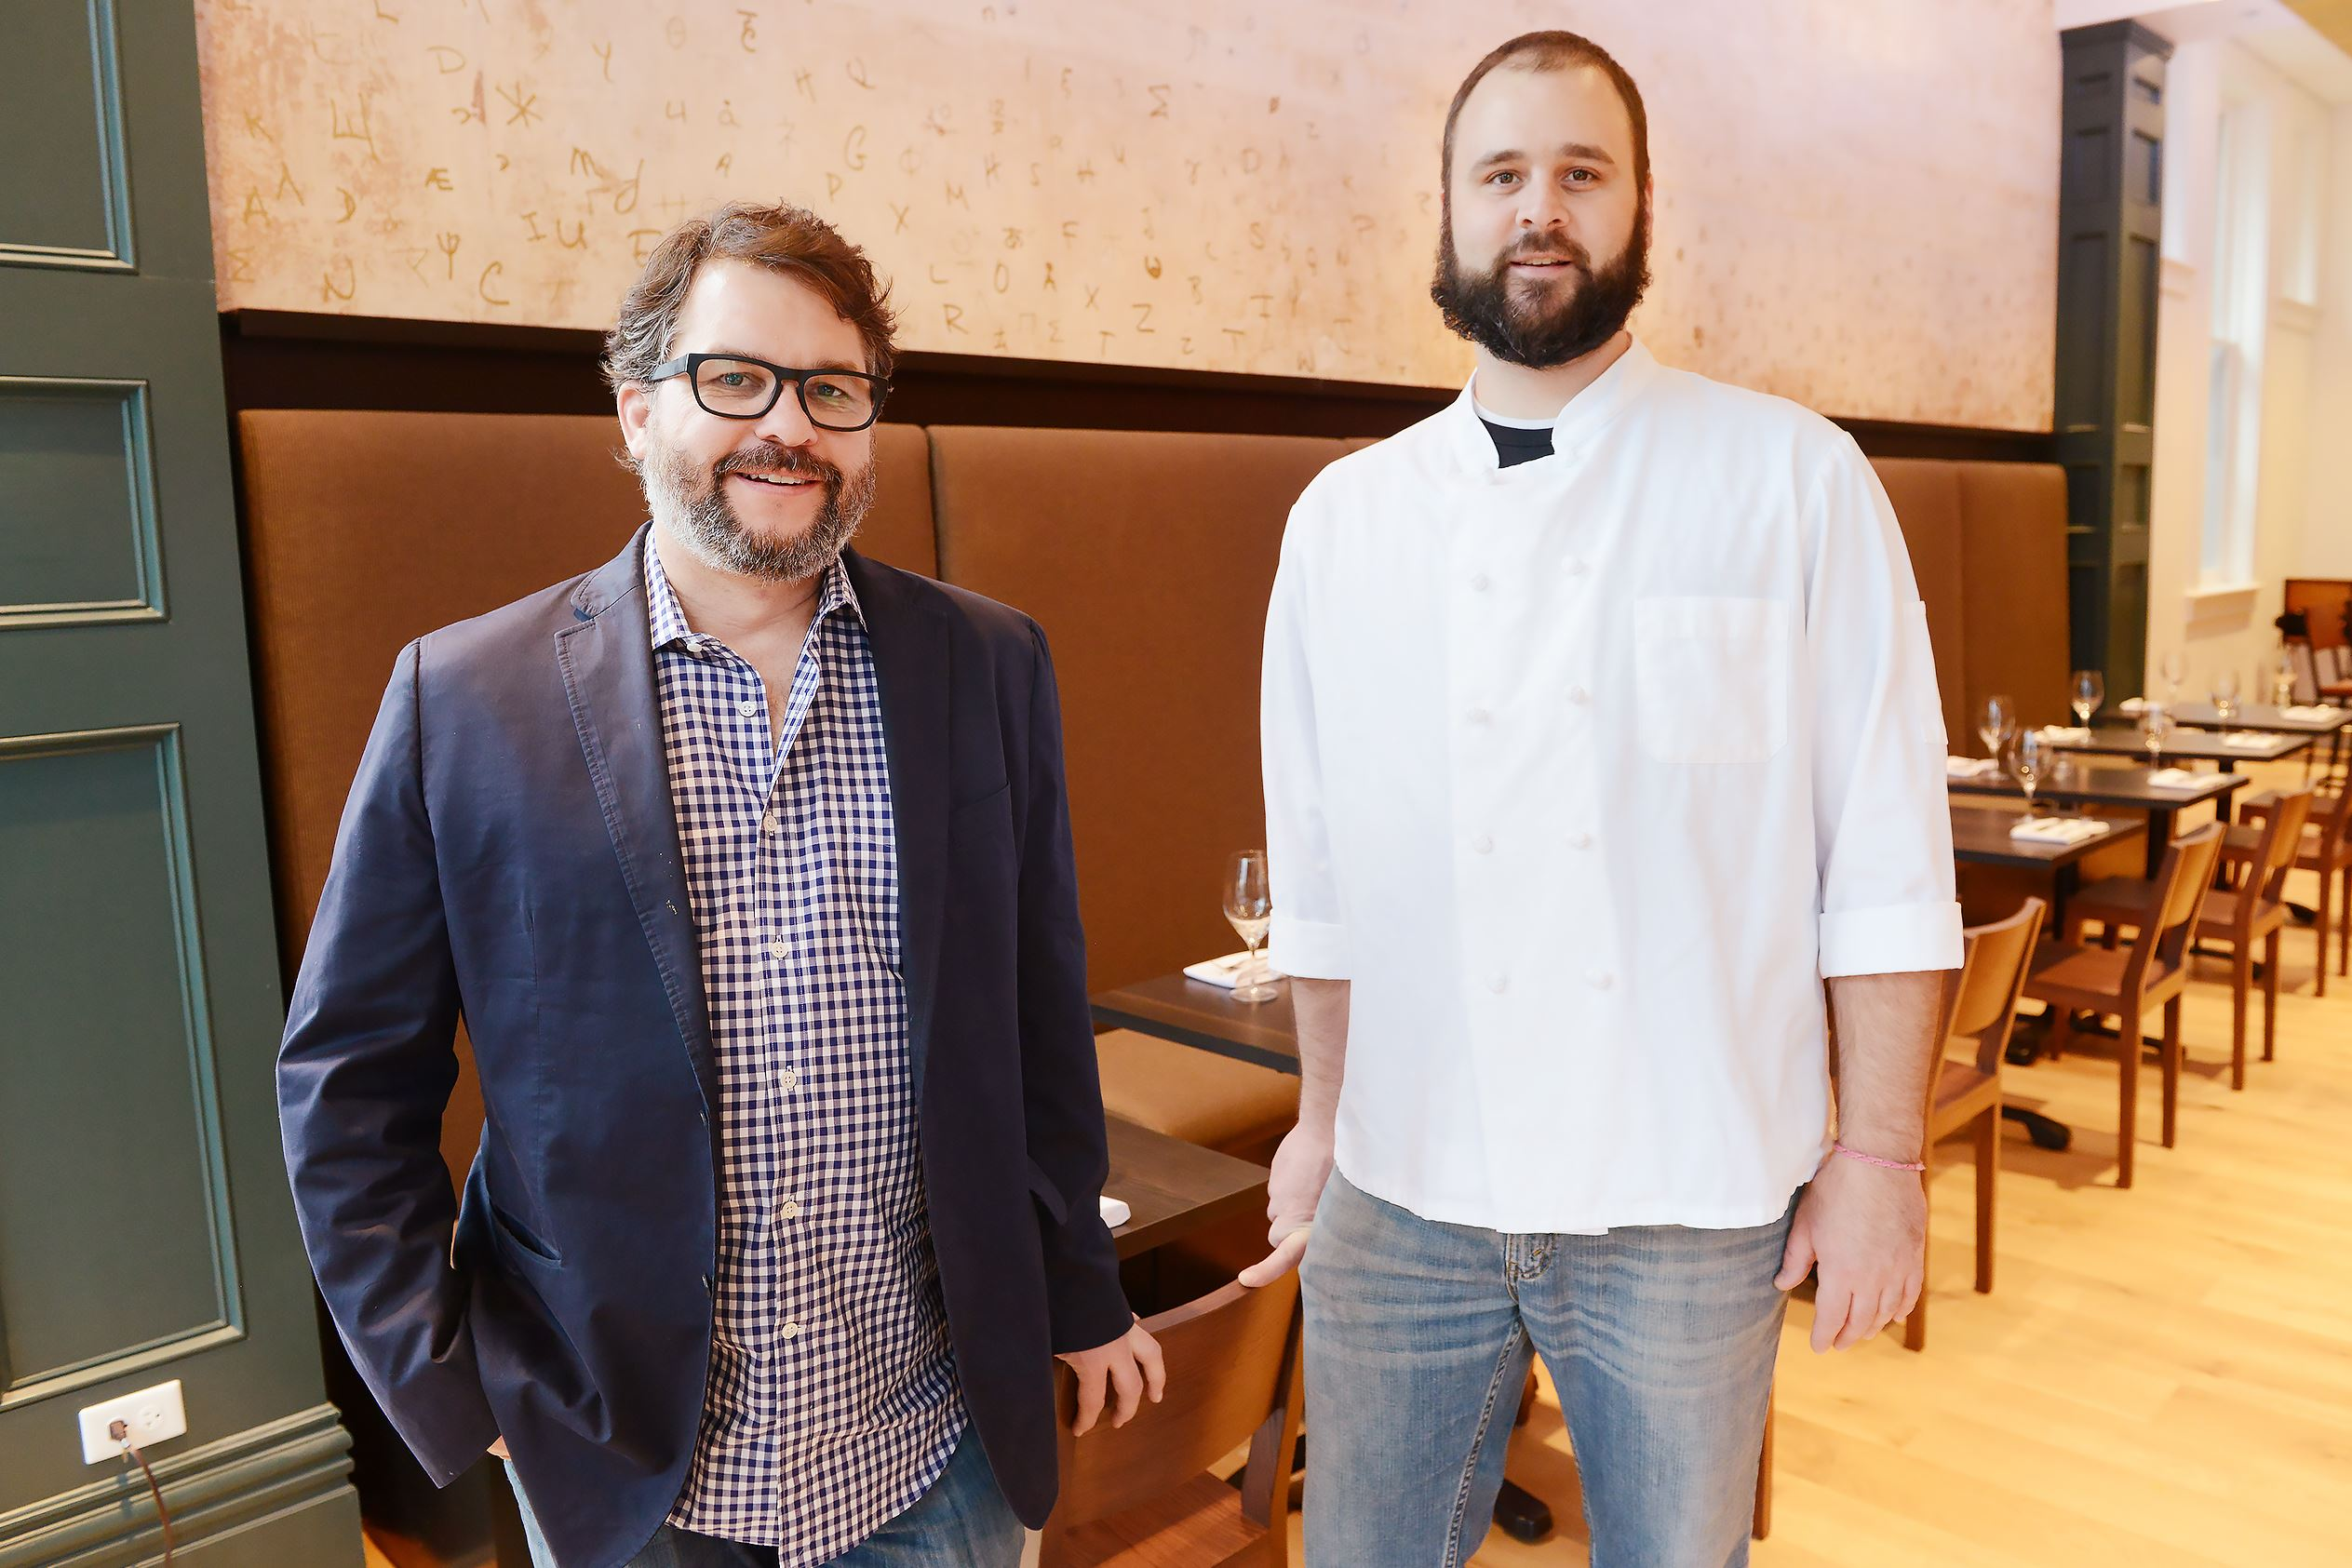 20170117rldCasellula10 Owner Brian Keyser, left, and executive chef Andrew Hill, Casellula, the new restaurant at City of Asylum's Alphabet City, on the North Side.